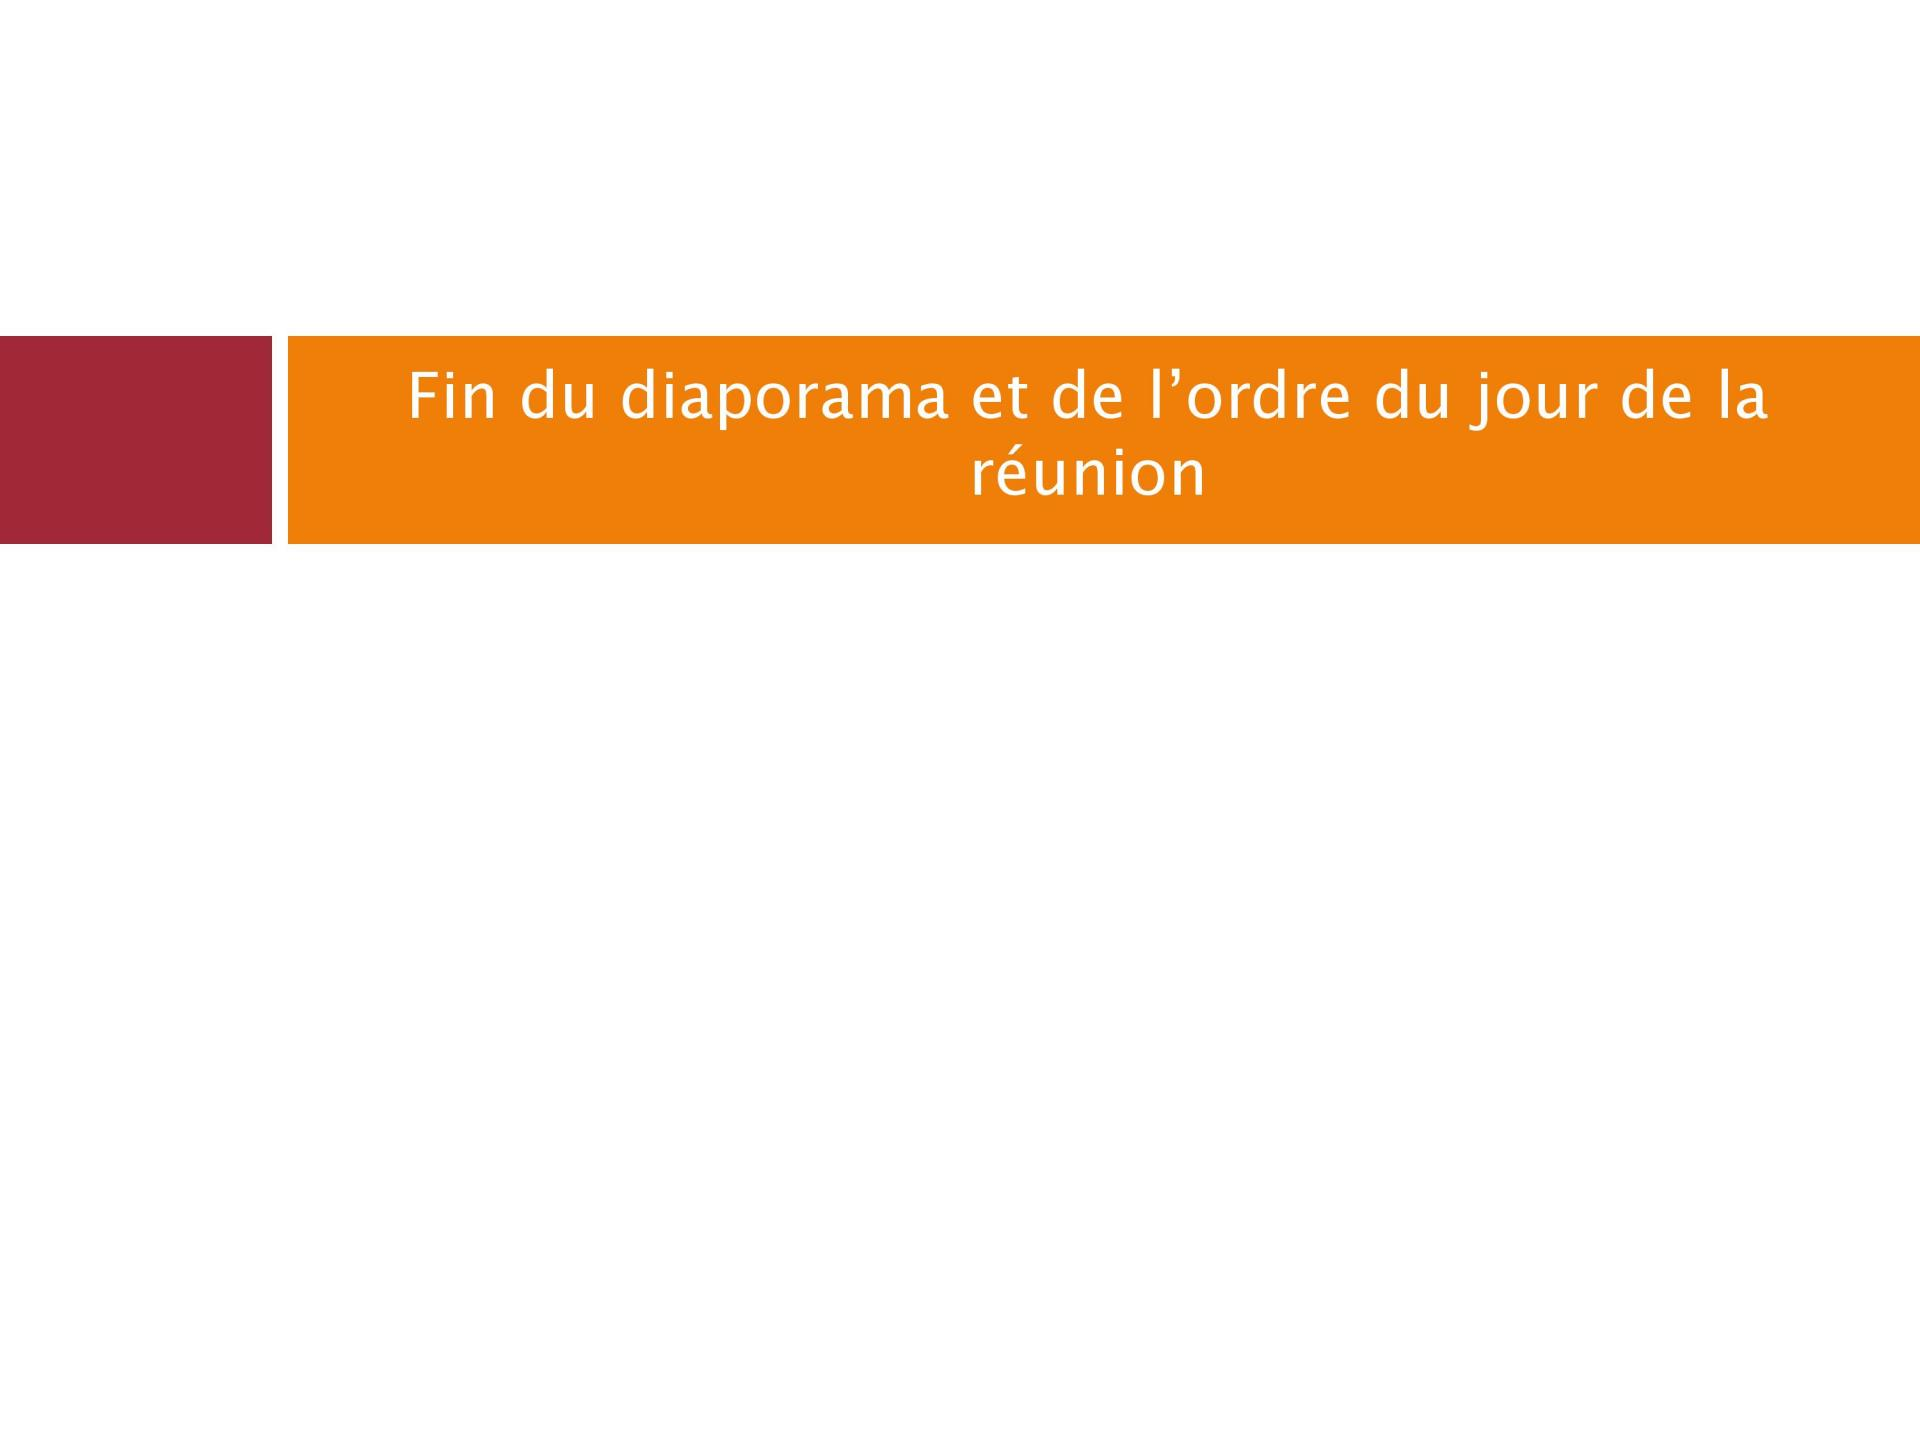 Reunion publique de concertation page 021